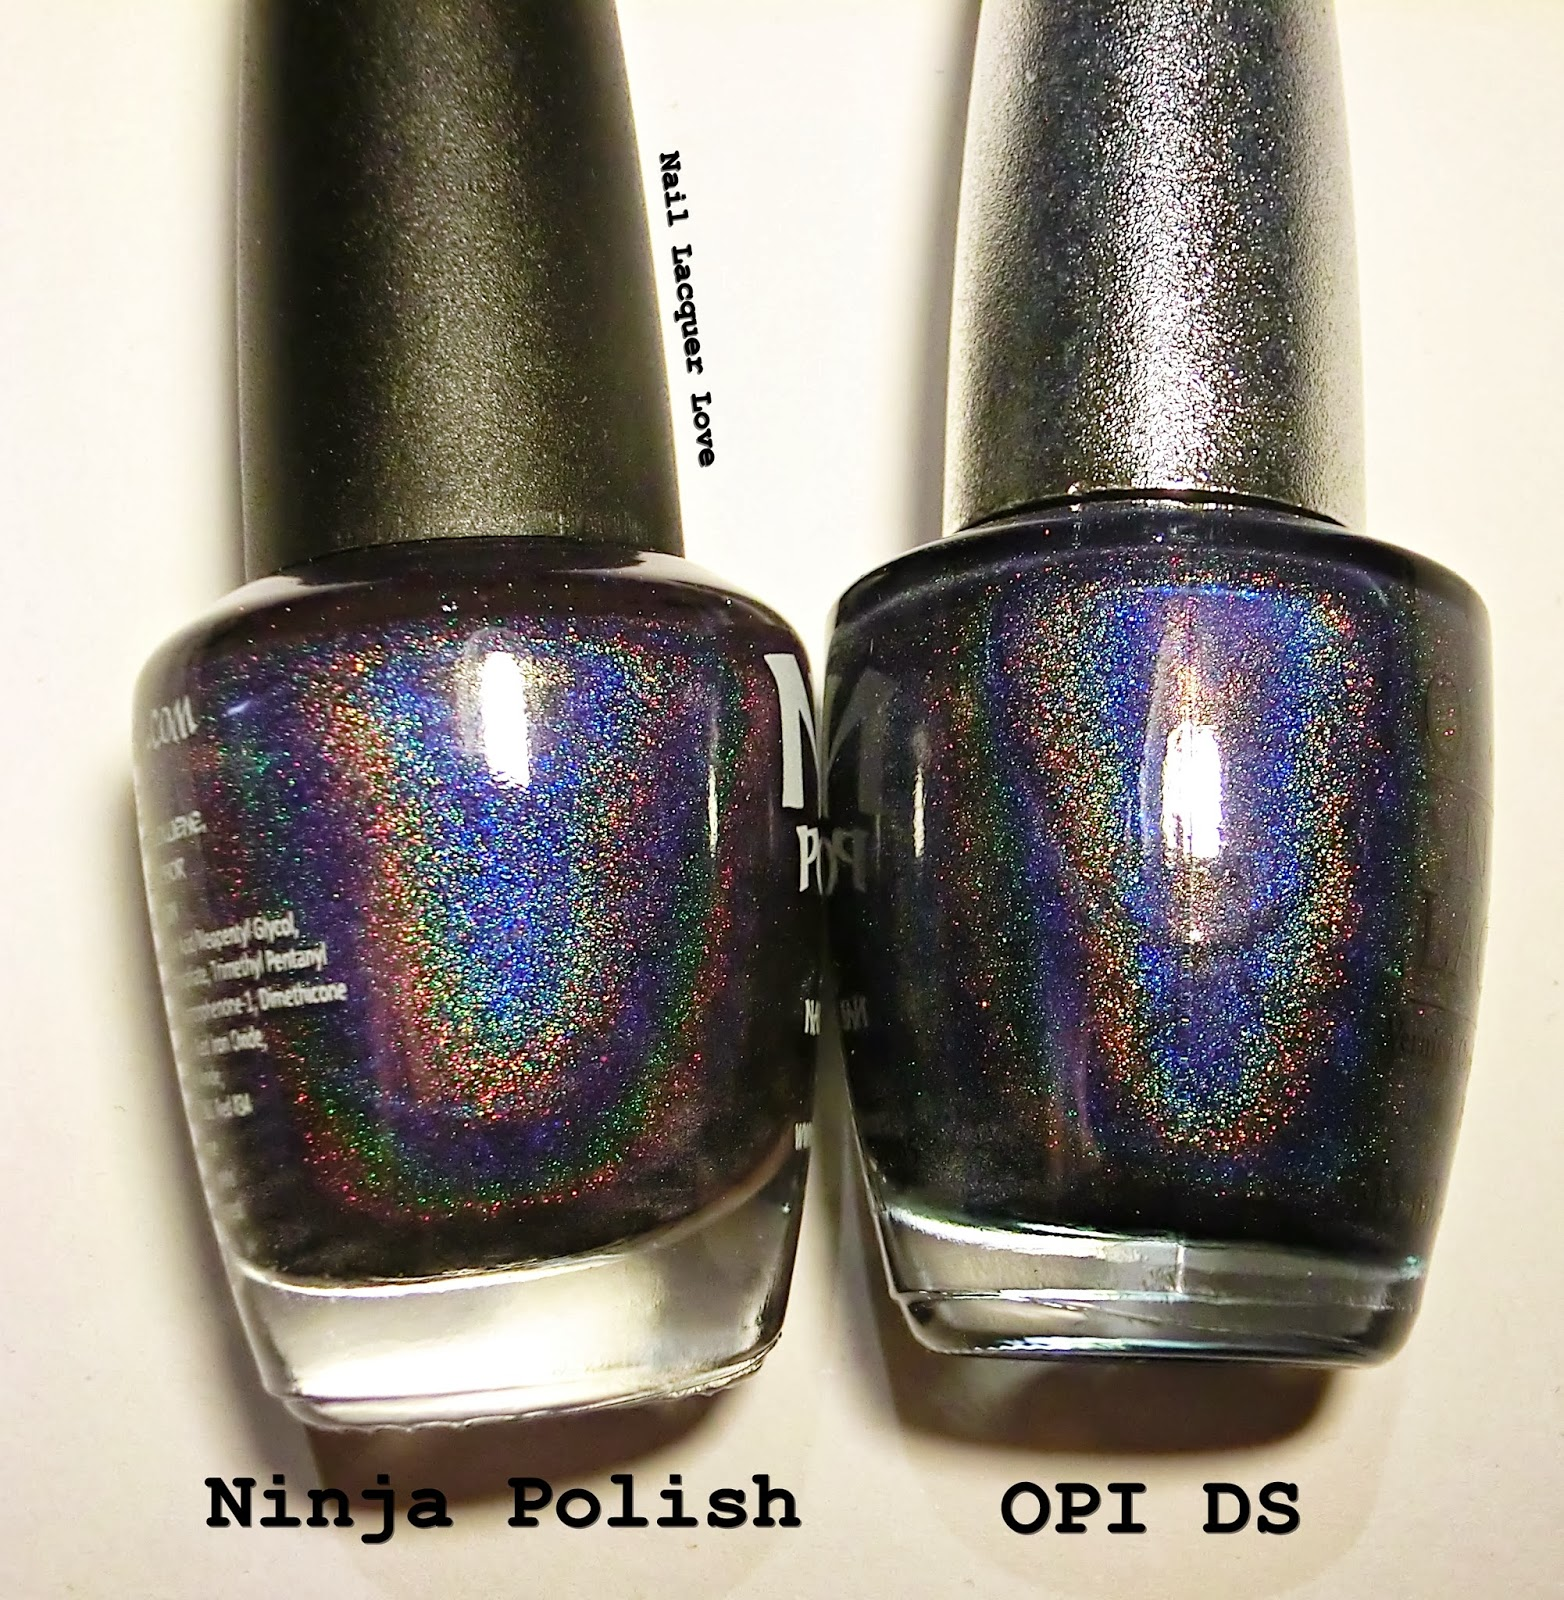 As You Can See They Do Look Quite Similar The Holo Is Stronger In Ninja Polish Glamourous On Left Than Opi Ds Glamour Right